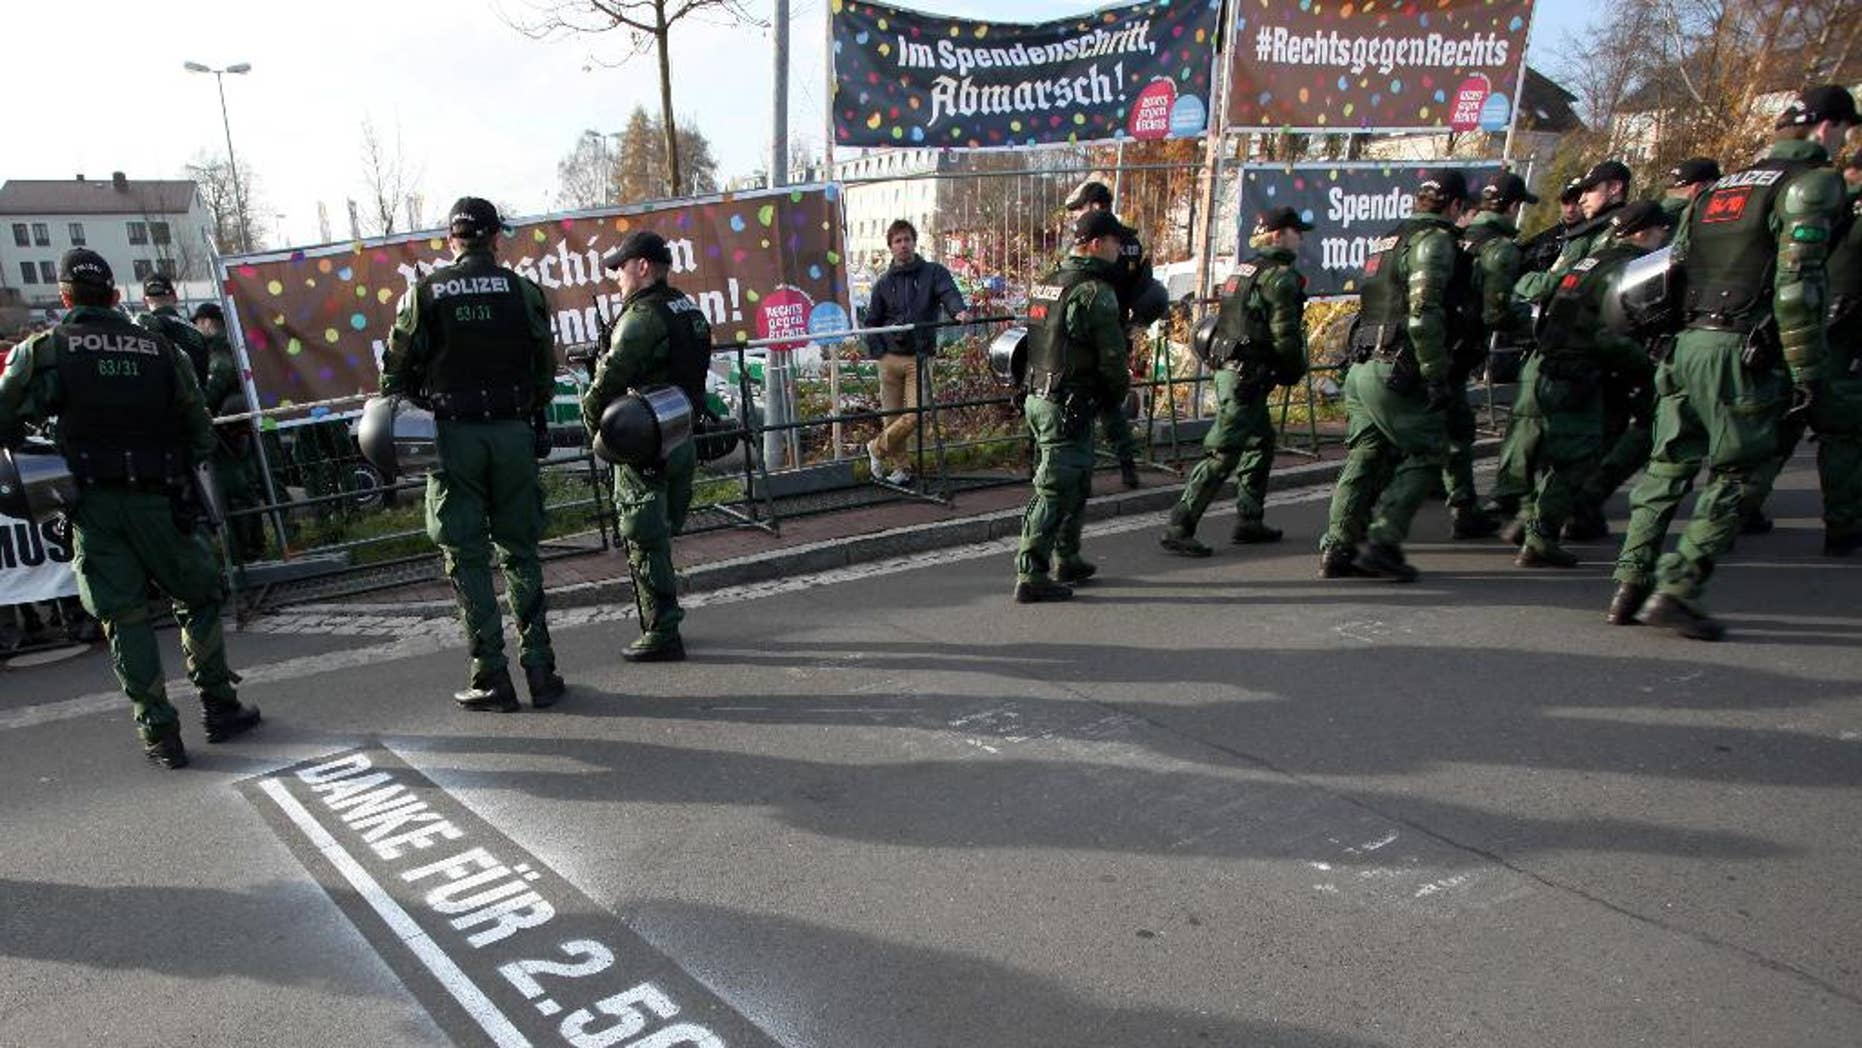 "In this picture taken Saturday, Nov. 15, 2014, police stand in front of banners reading ""Donate with every step, march"", top left, and ""#right against right"" top right, during a far-right march Wunsiedel, southern Germany. Letters on the ground say ""Thanks for euro 2,500!"". After failing to prevent neo-Nazis from staging an annual pilgrimage to the birthplace of Adolf Hitler's deputy Rudolf Hess, the Bavarian town decided to change tack this year. Residents and businesses pledged to pay 10 euro (US dollar 12.50) for every meter the neo-Nazis walked, and motivational signs were erected along the route of Saturday's march. Inge Schuster, a spokeswoman for the town, said Tuesday that the stunt received ""a great response,"" raising more than 10,000 euros for the group EXIT-Deutschland that helps people leave the neo-Nazi scene. (AP Photo/dpa, Fricke)"